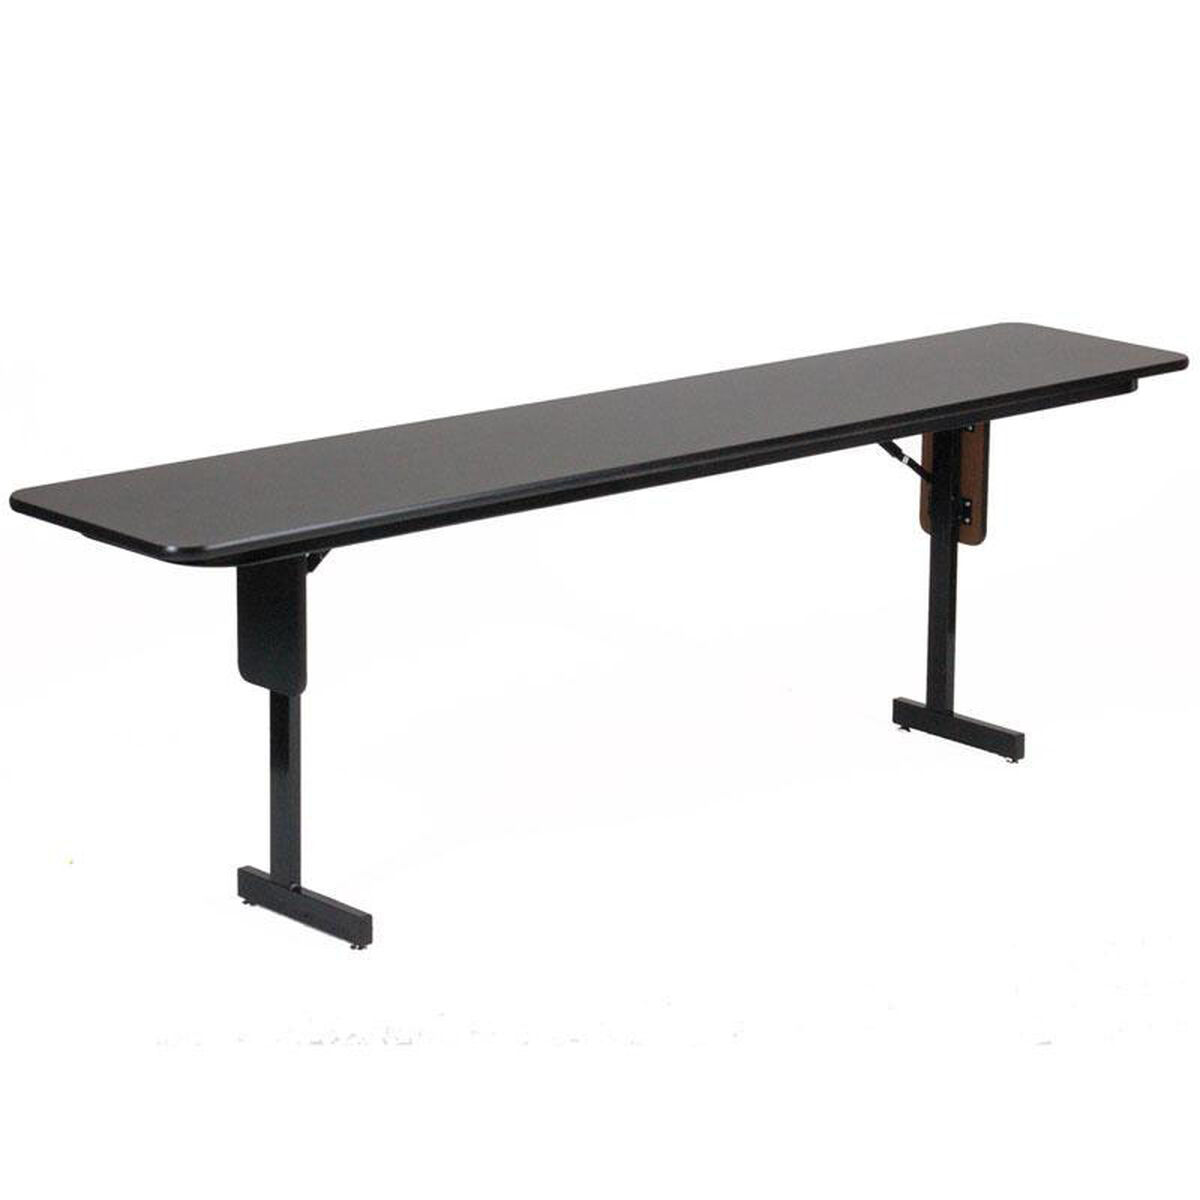 Rectangular Folding Training Table SPAPX FoldingChairsLesscom - Adjustable height training table